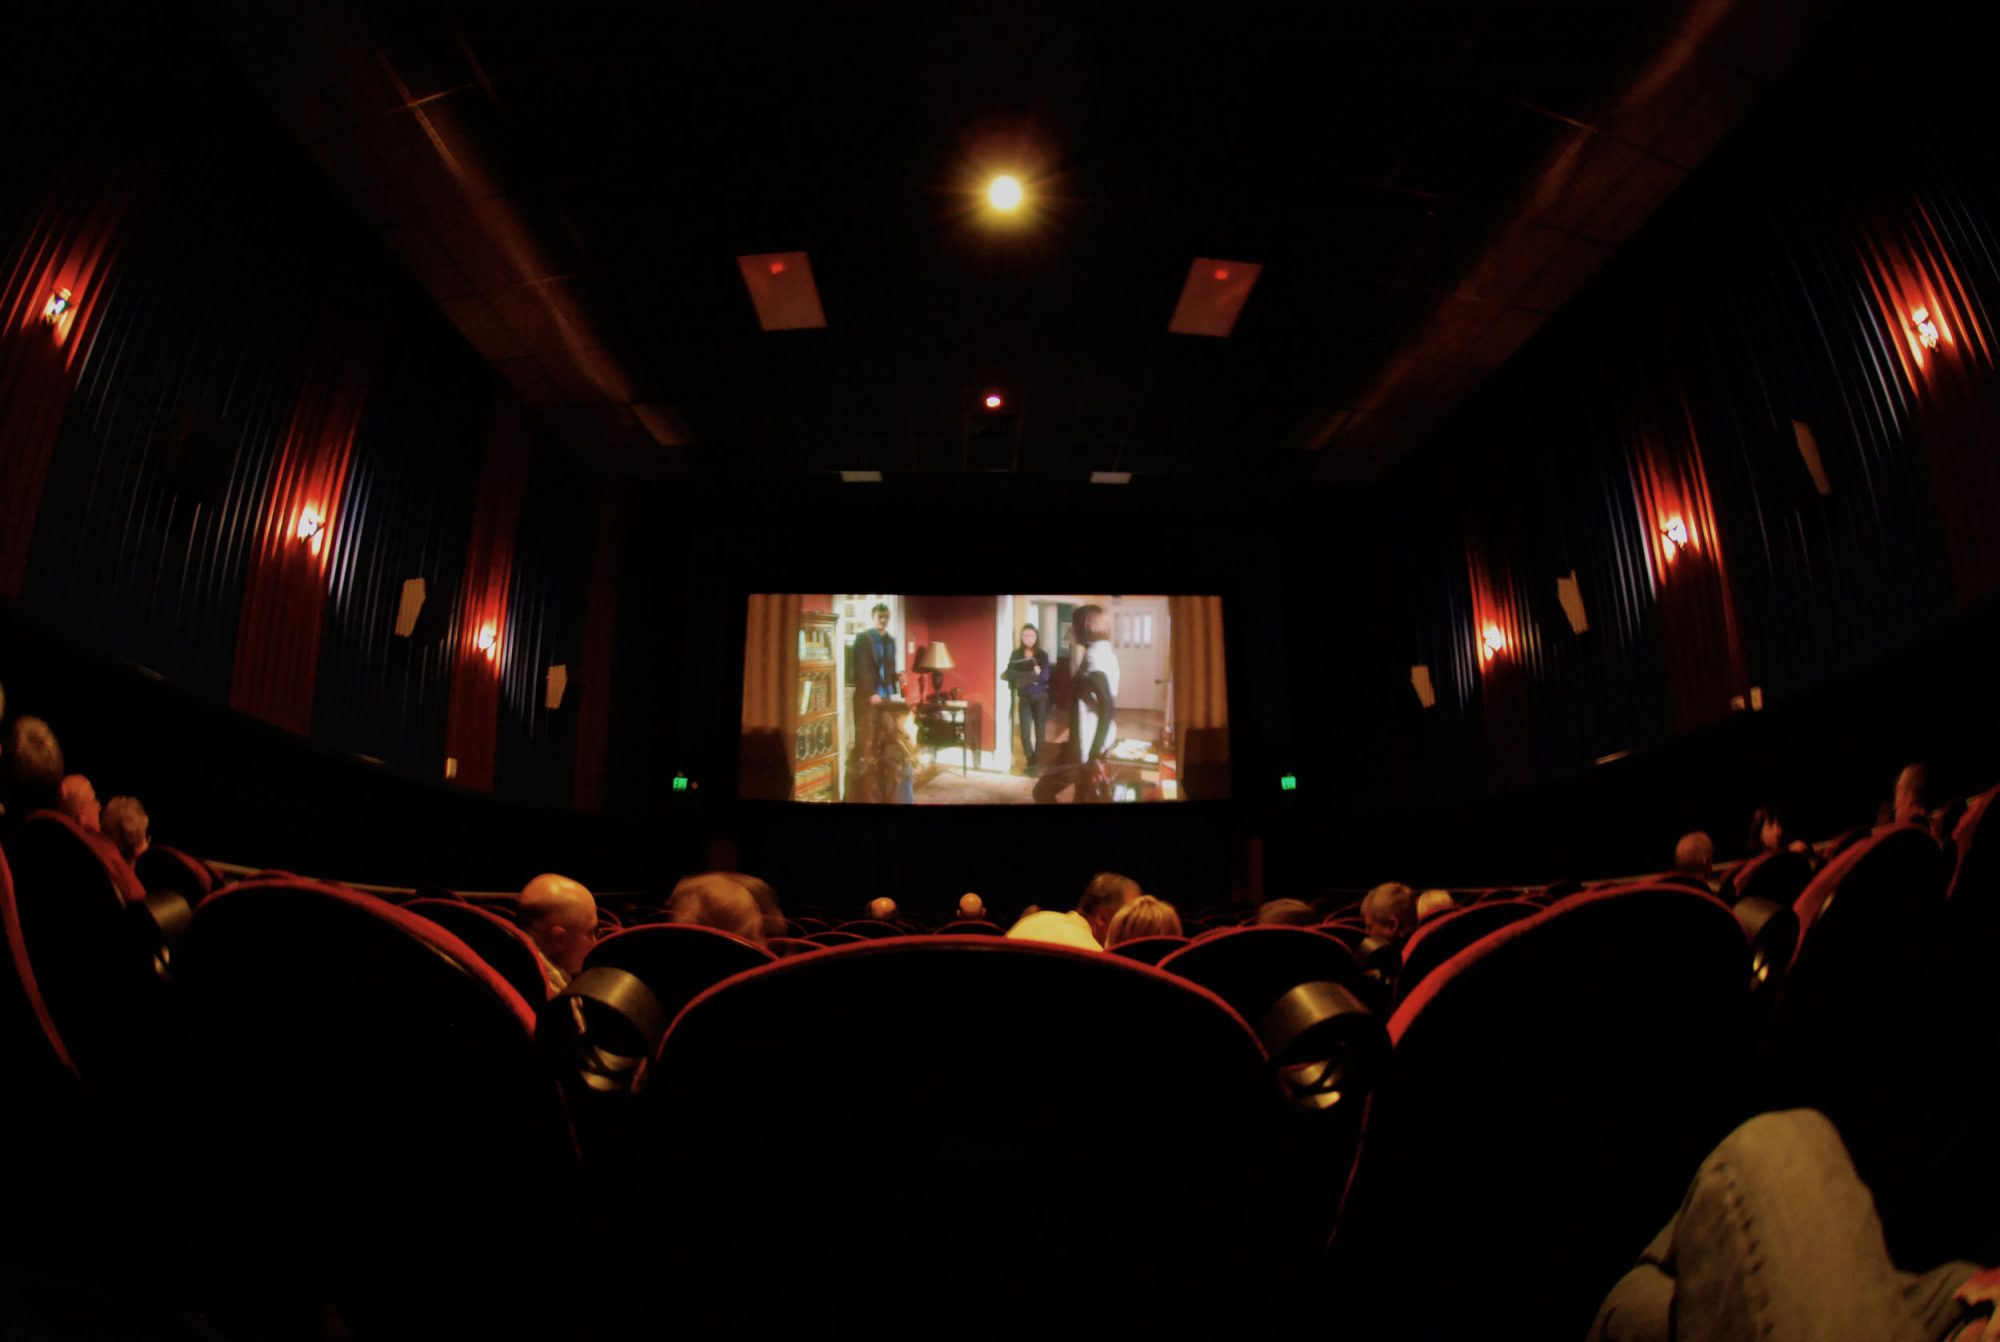 EC: Breakfast at the Movies Is Better Than Brunch